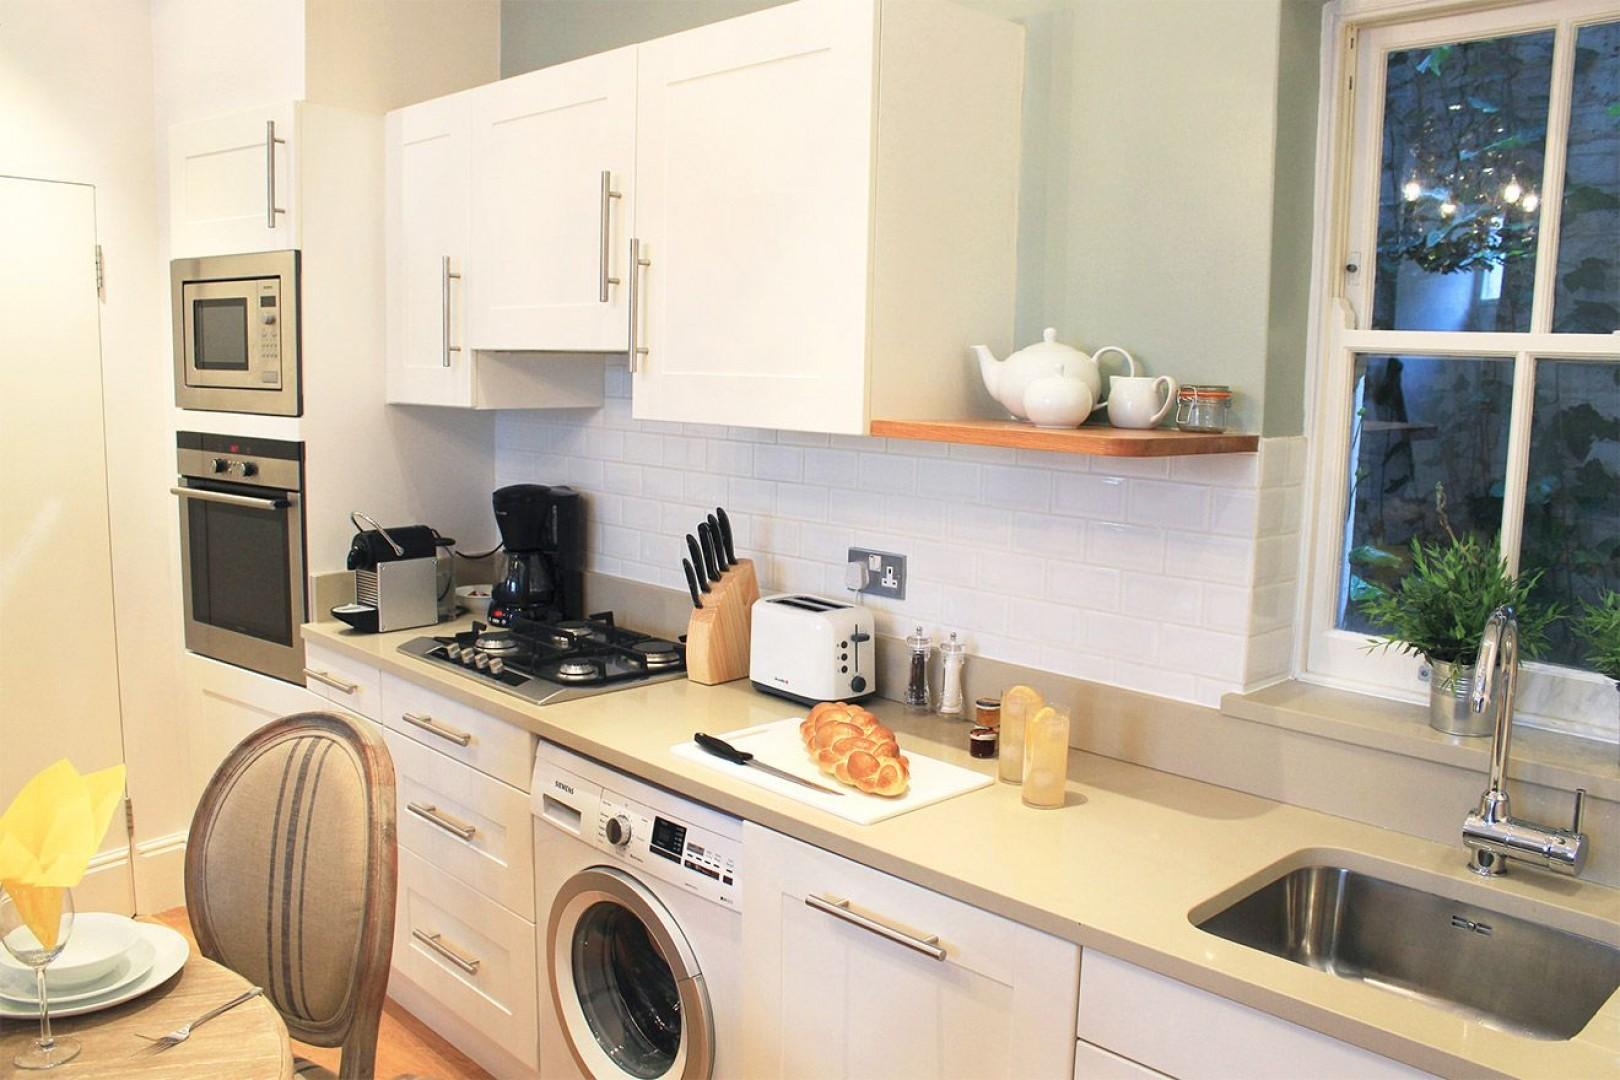 Fully equipped kitchen is perfect for cooking meals at home